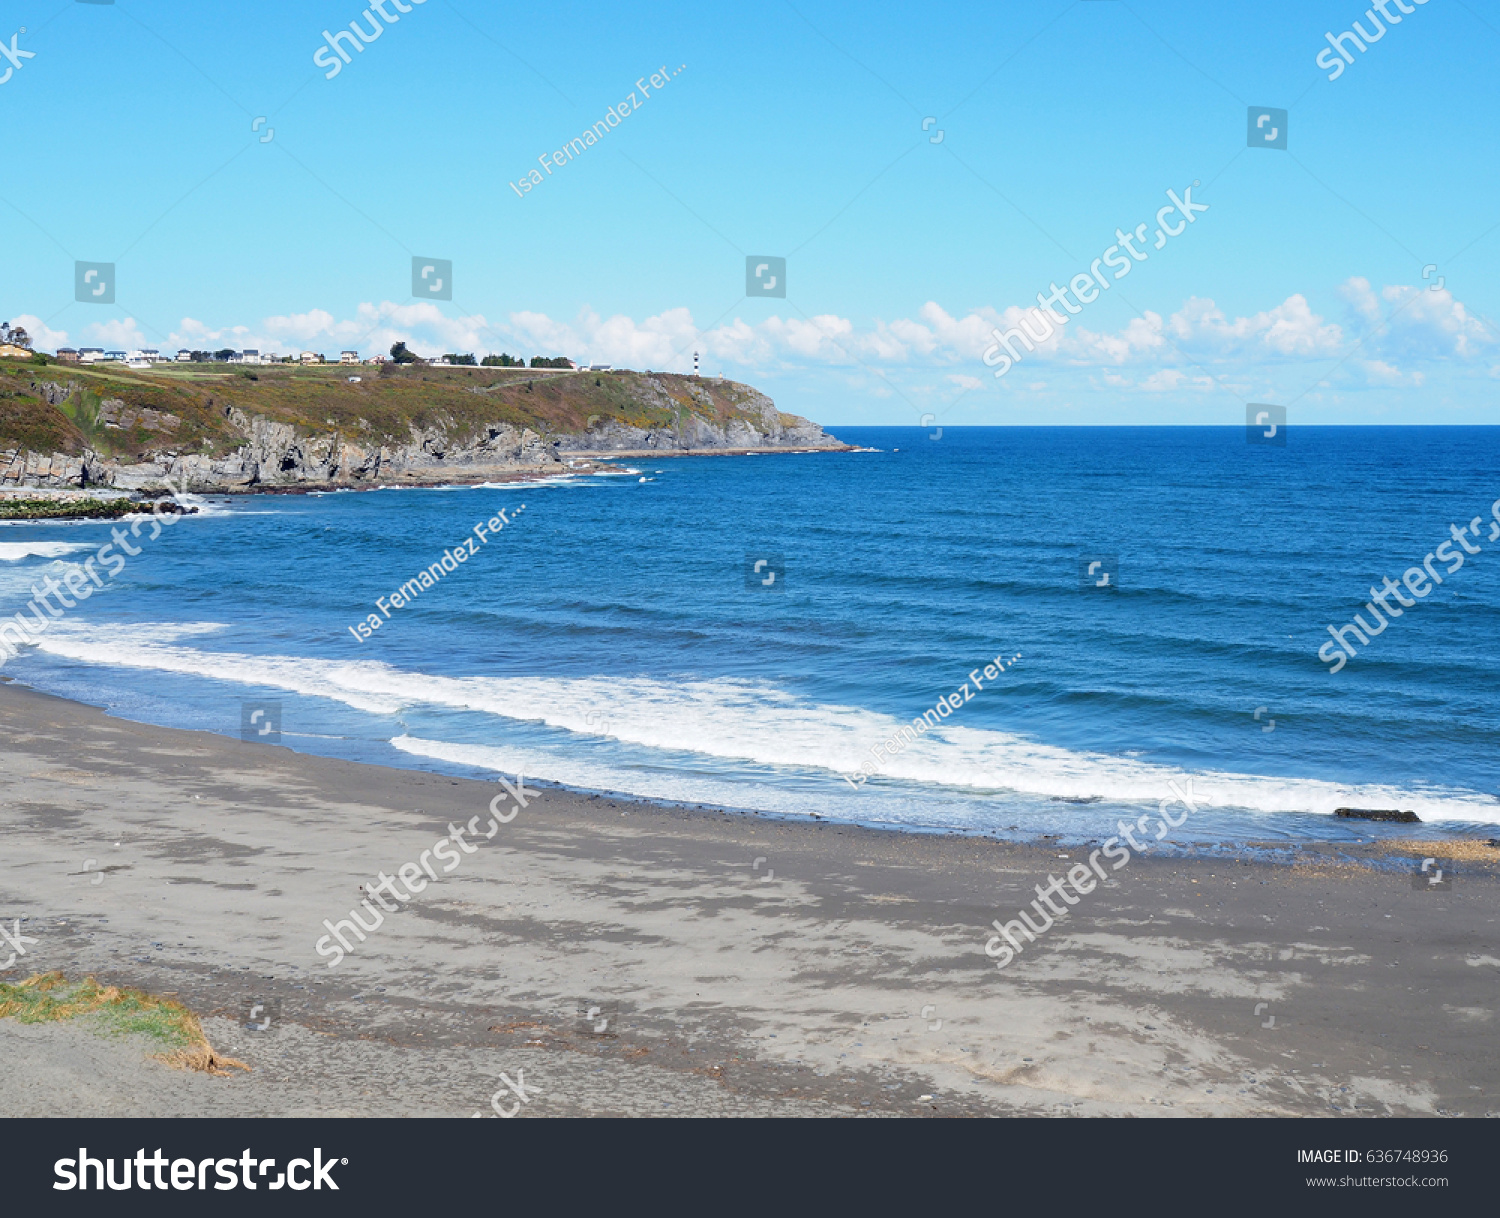 Fotos De Navia landscape beach navia asturias spain stock photo (edit now